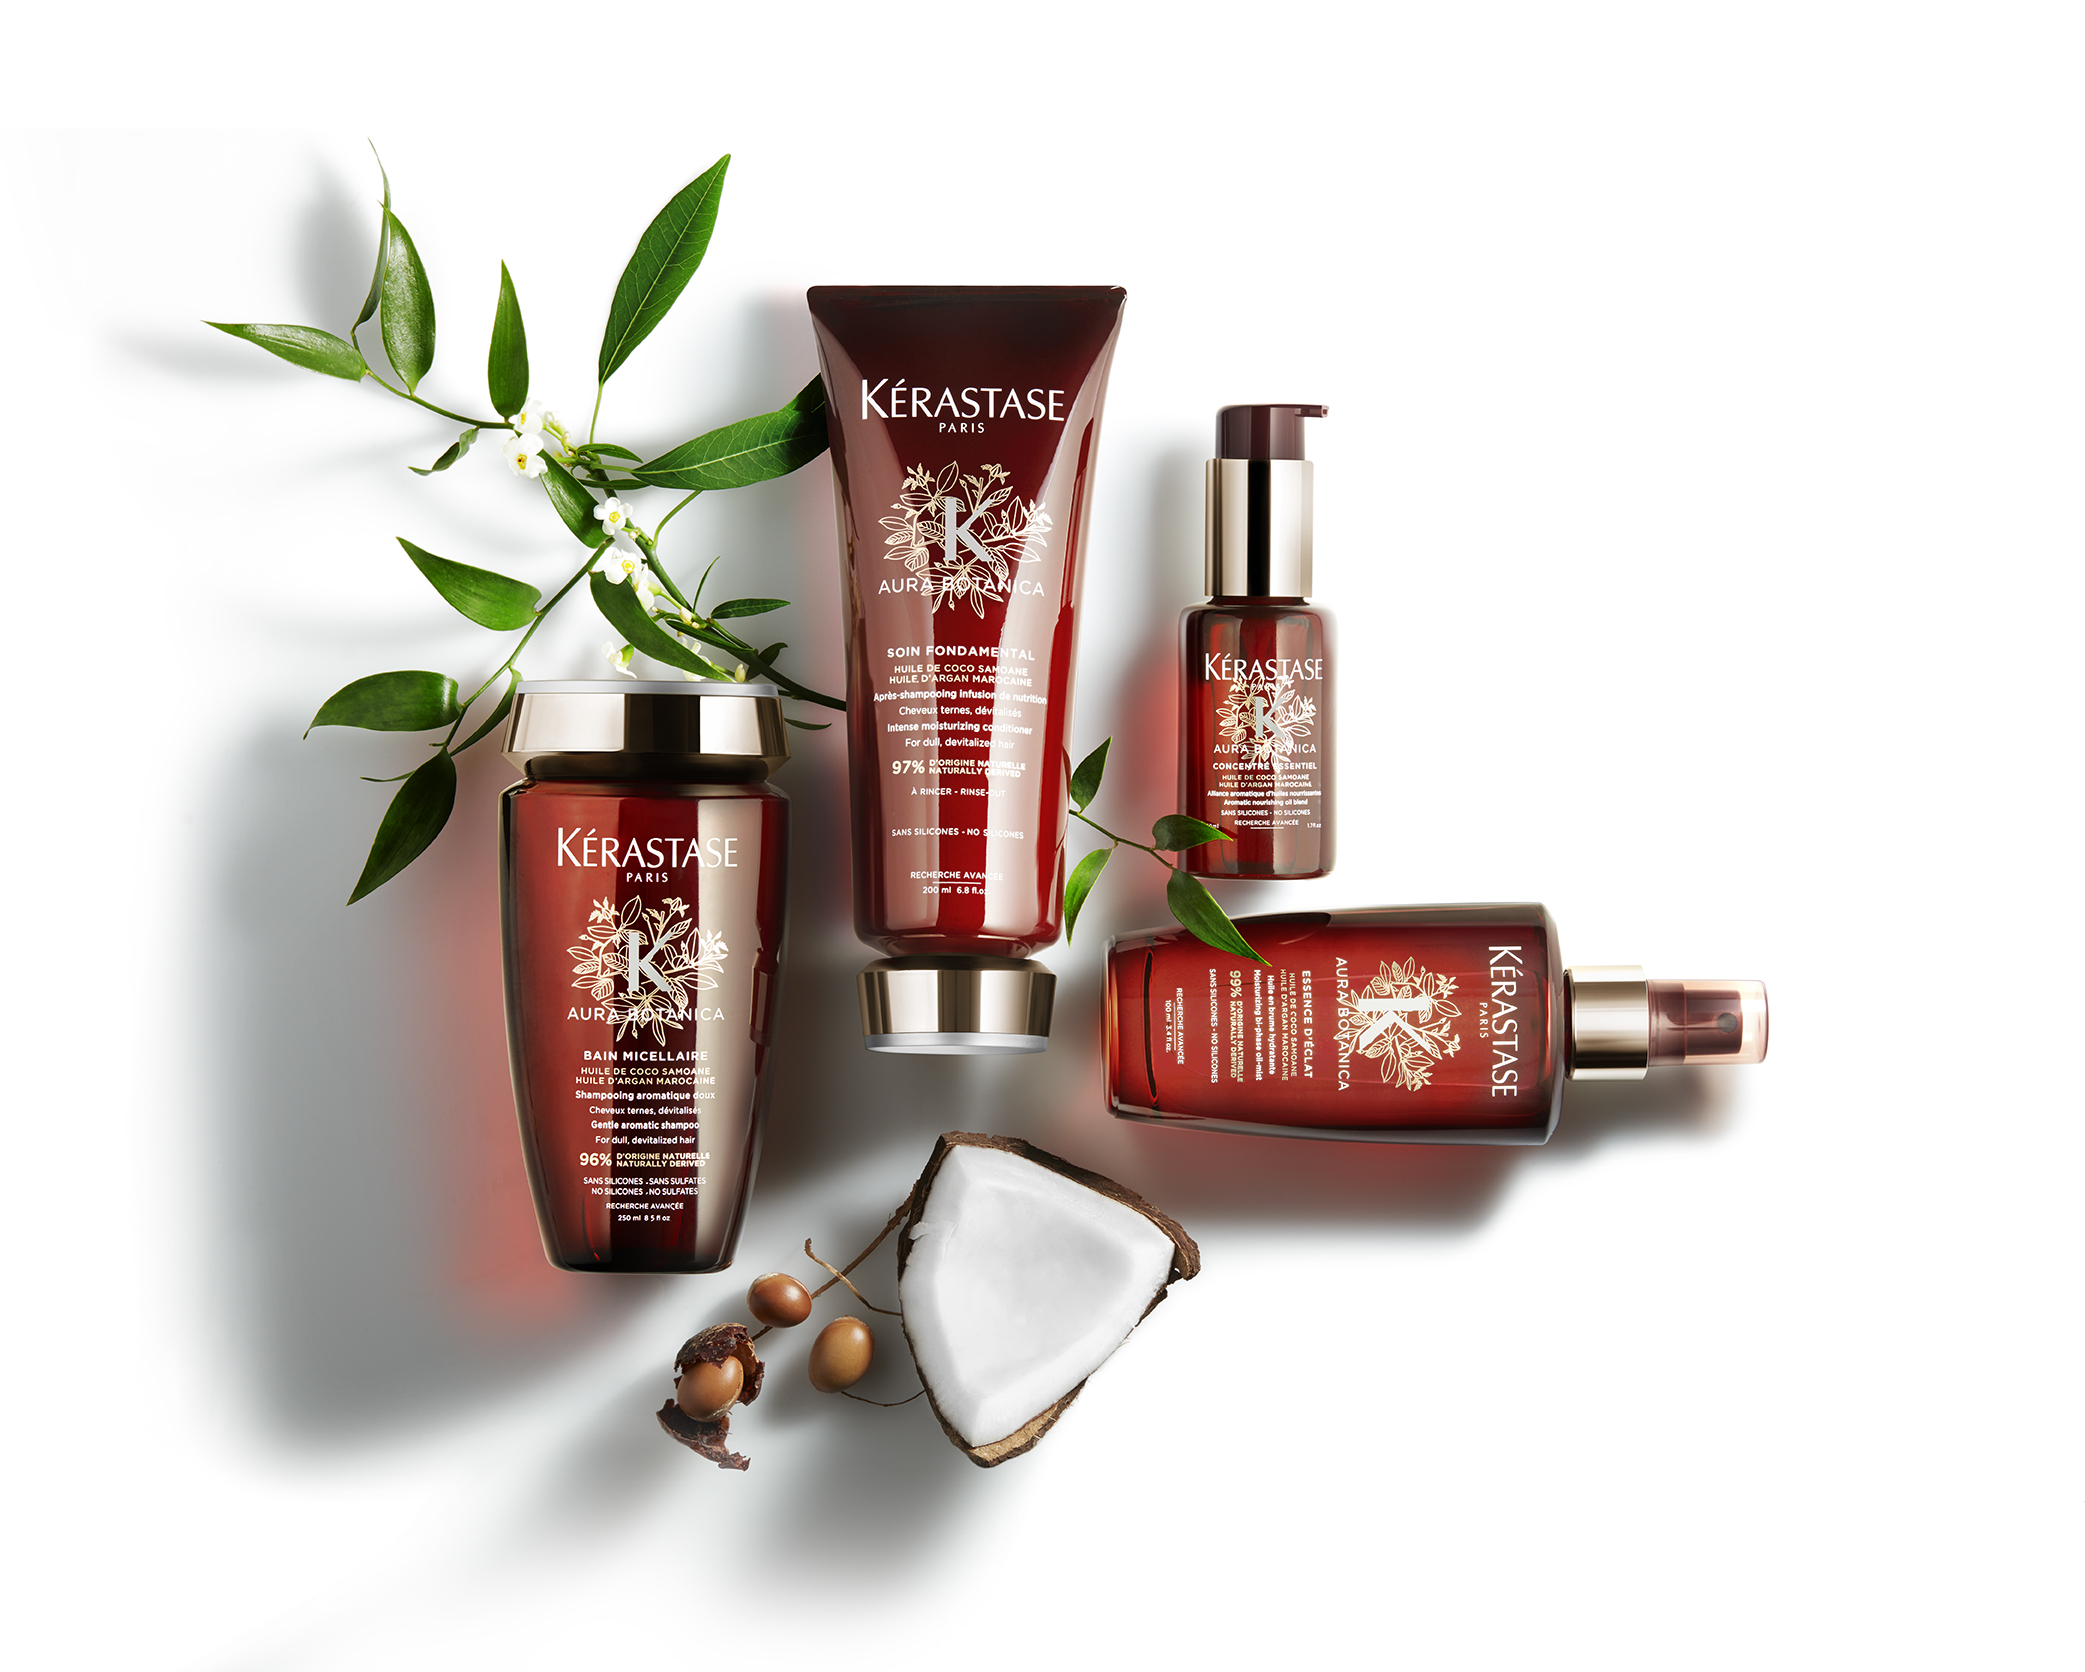 Hair care product reviews we